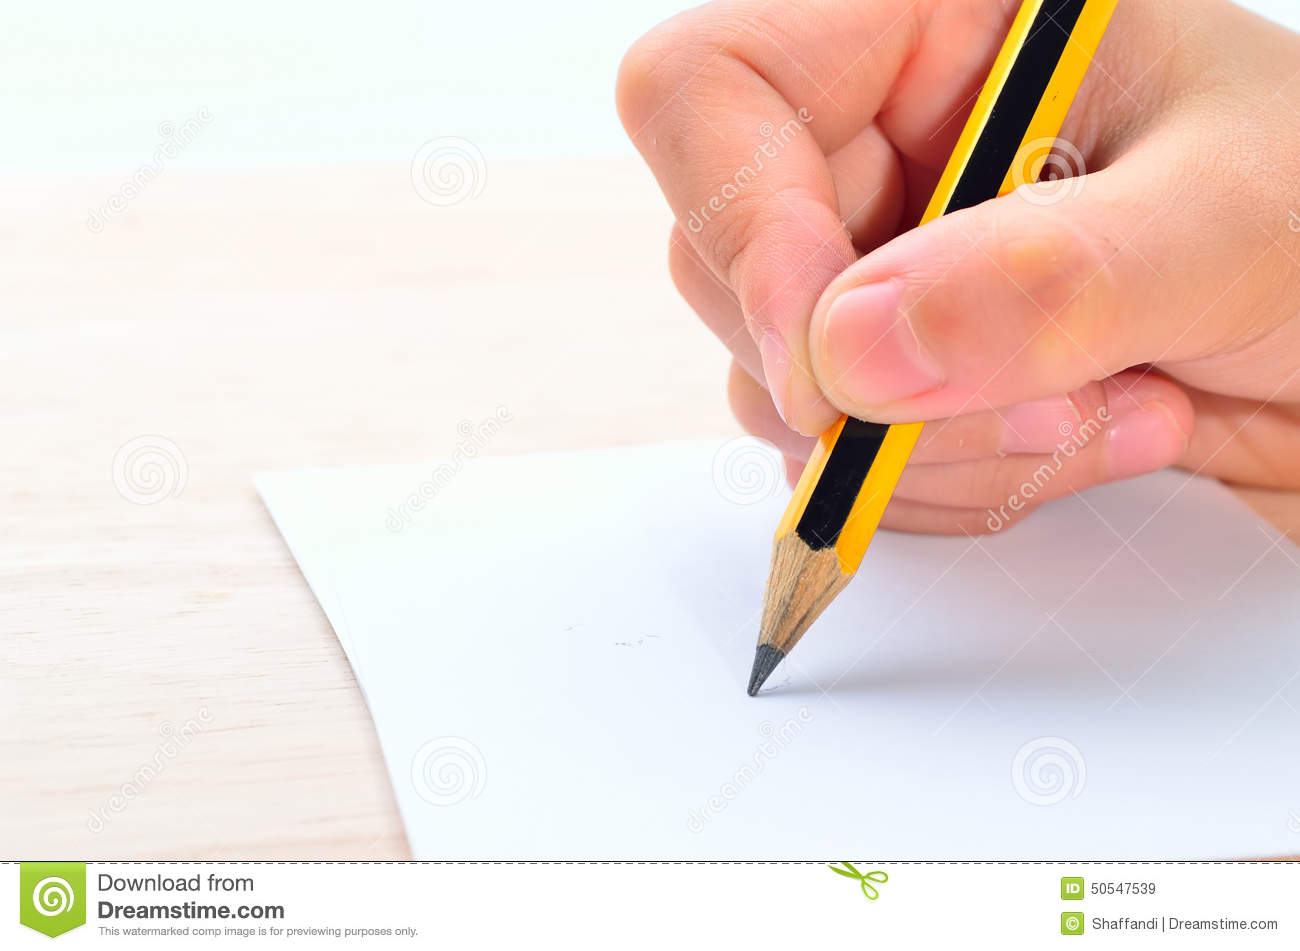 pencil in hand writing stock photo 50547539 - megapixl